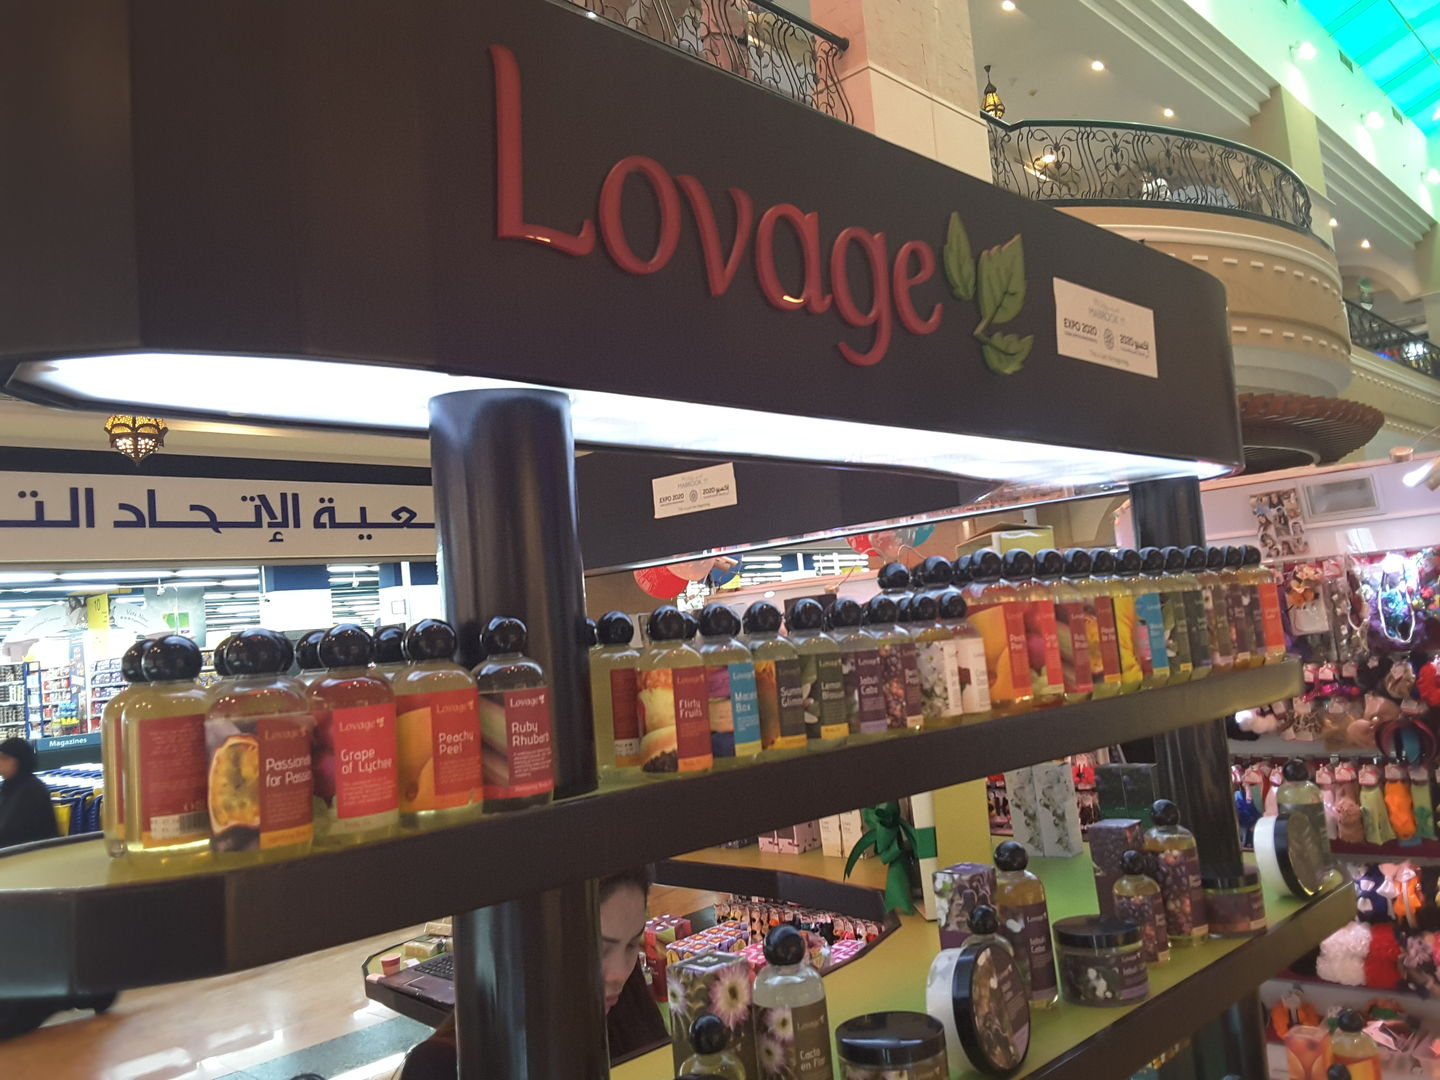 HiDubai-business-lovage-beauty-wellness-health-beauty-cosmetics-stores-muhaisnah-1-dubai-2